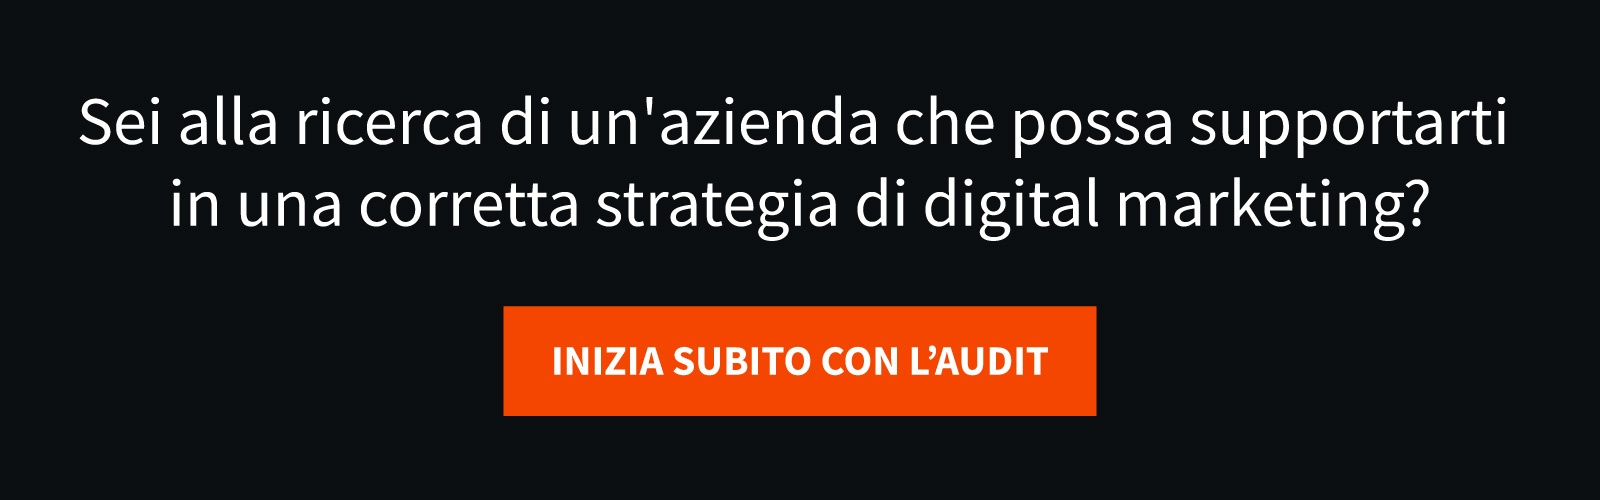 Sei alla ricerca di un'azienda che possa supportarti in una corretta strategia di digital marketing?